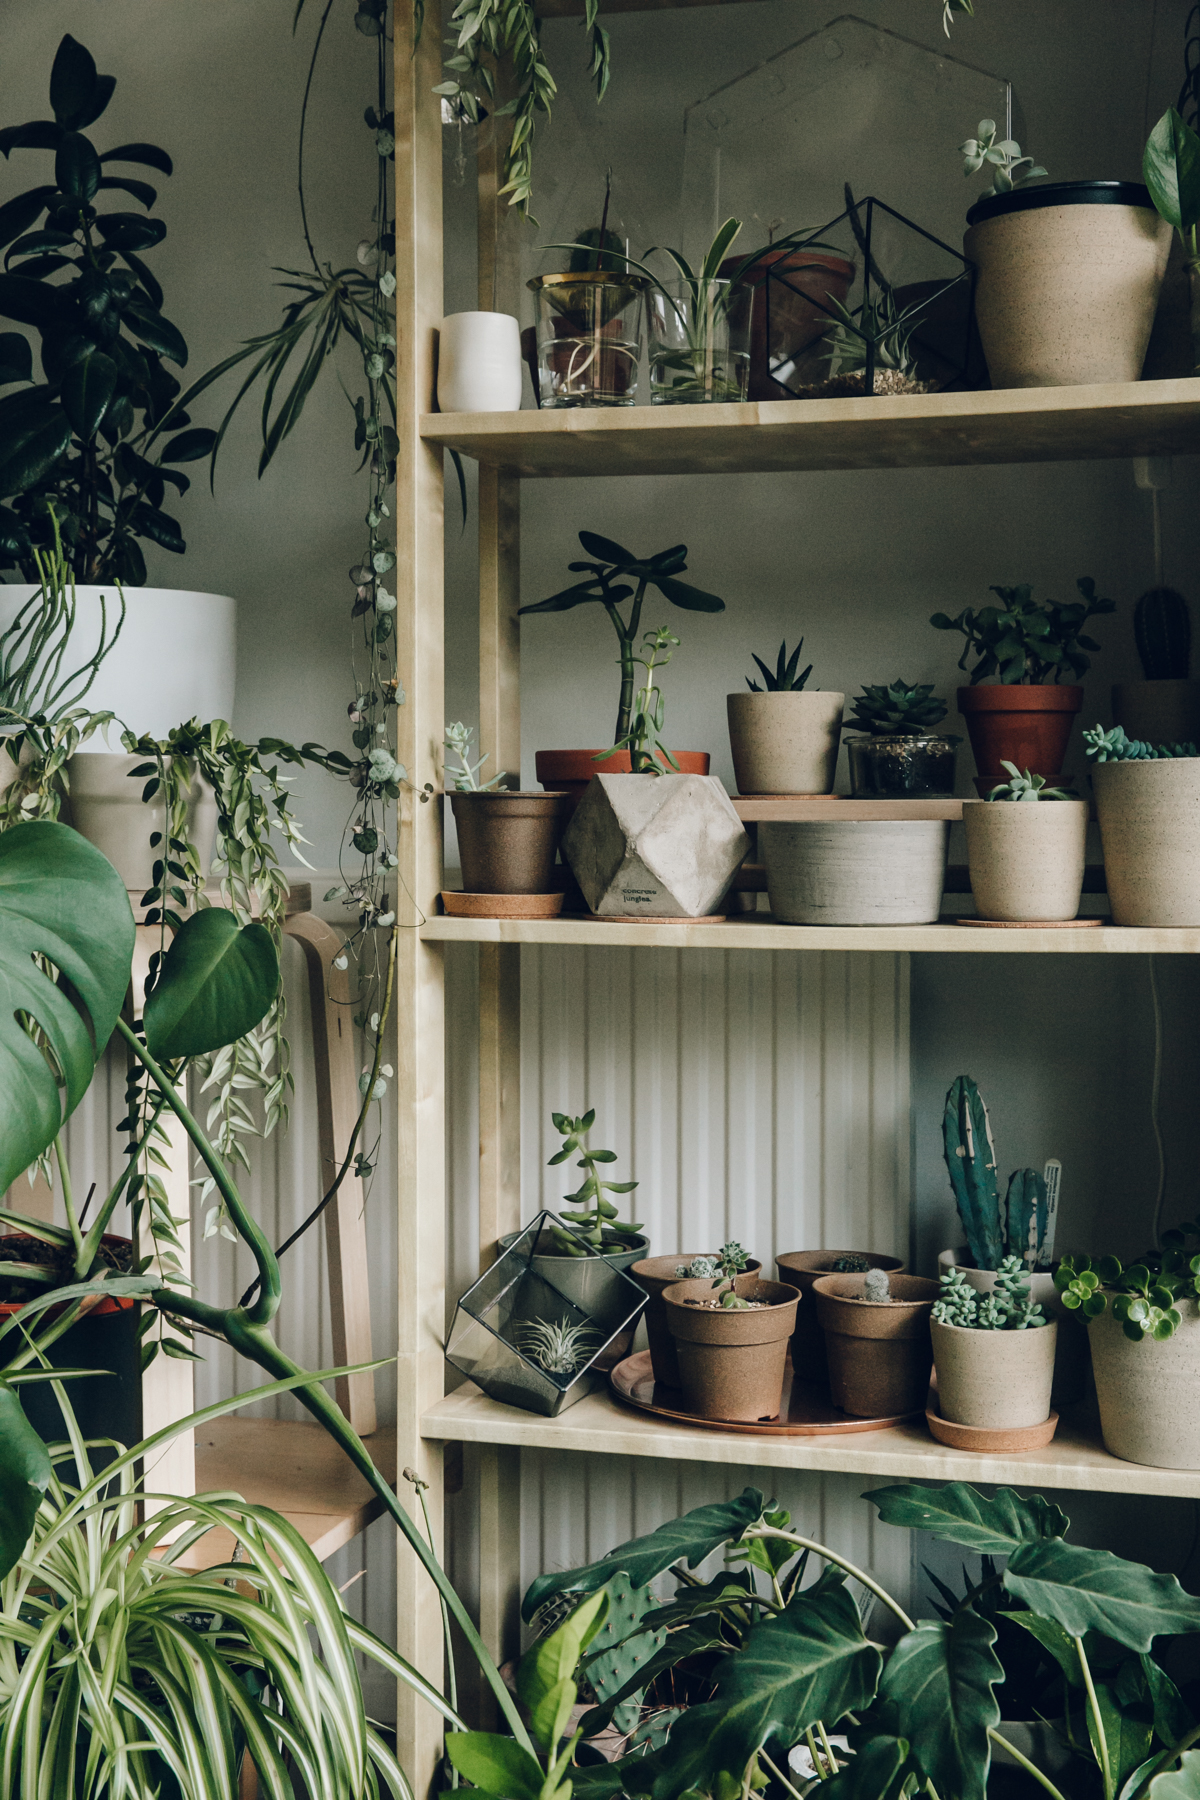 Indoor jungle and plant shelves.